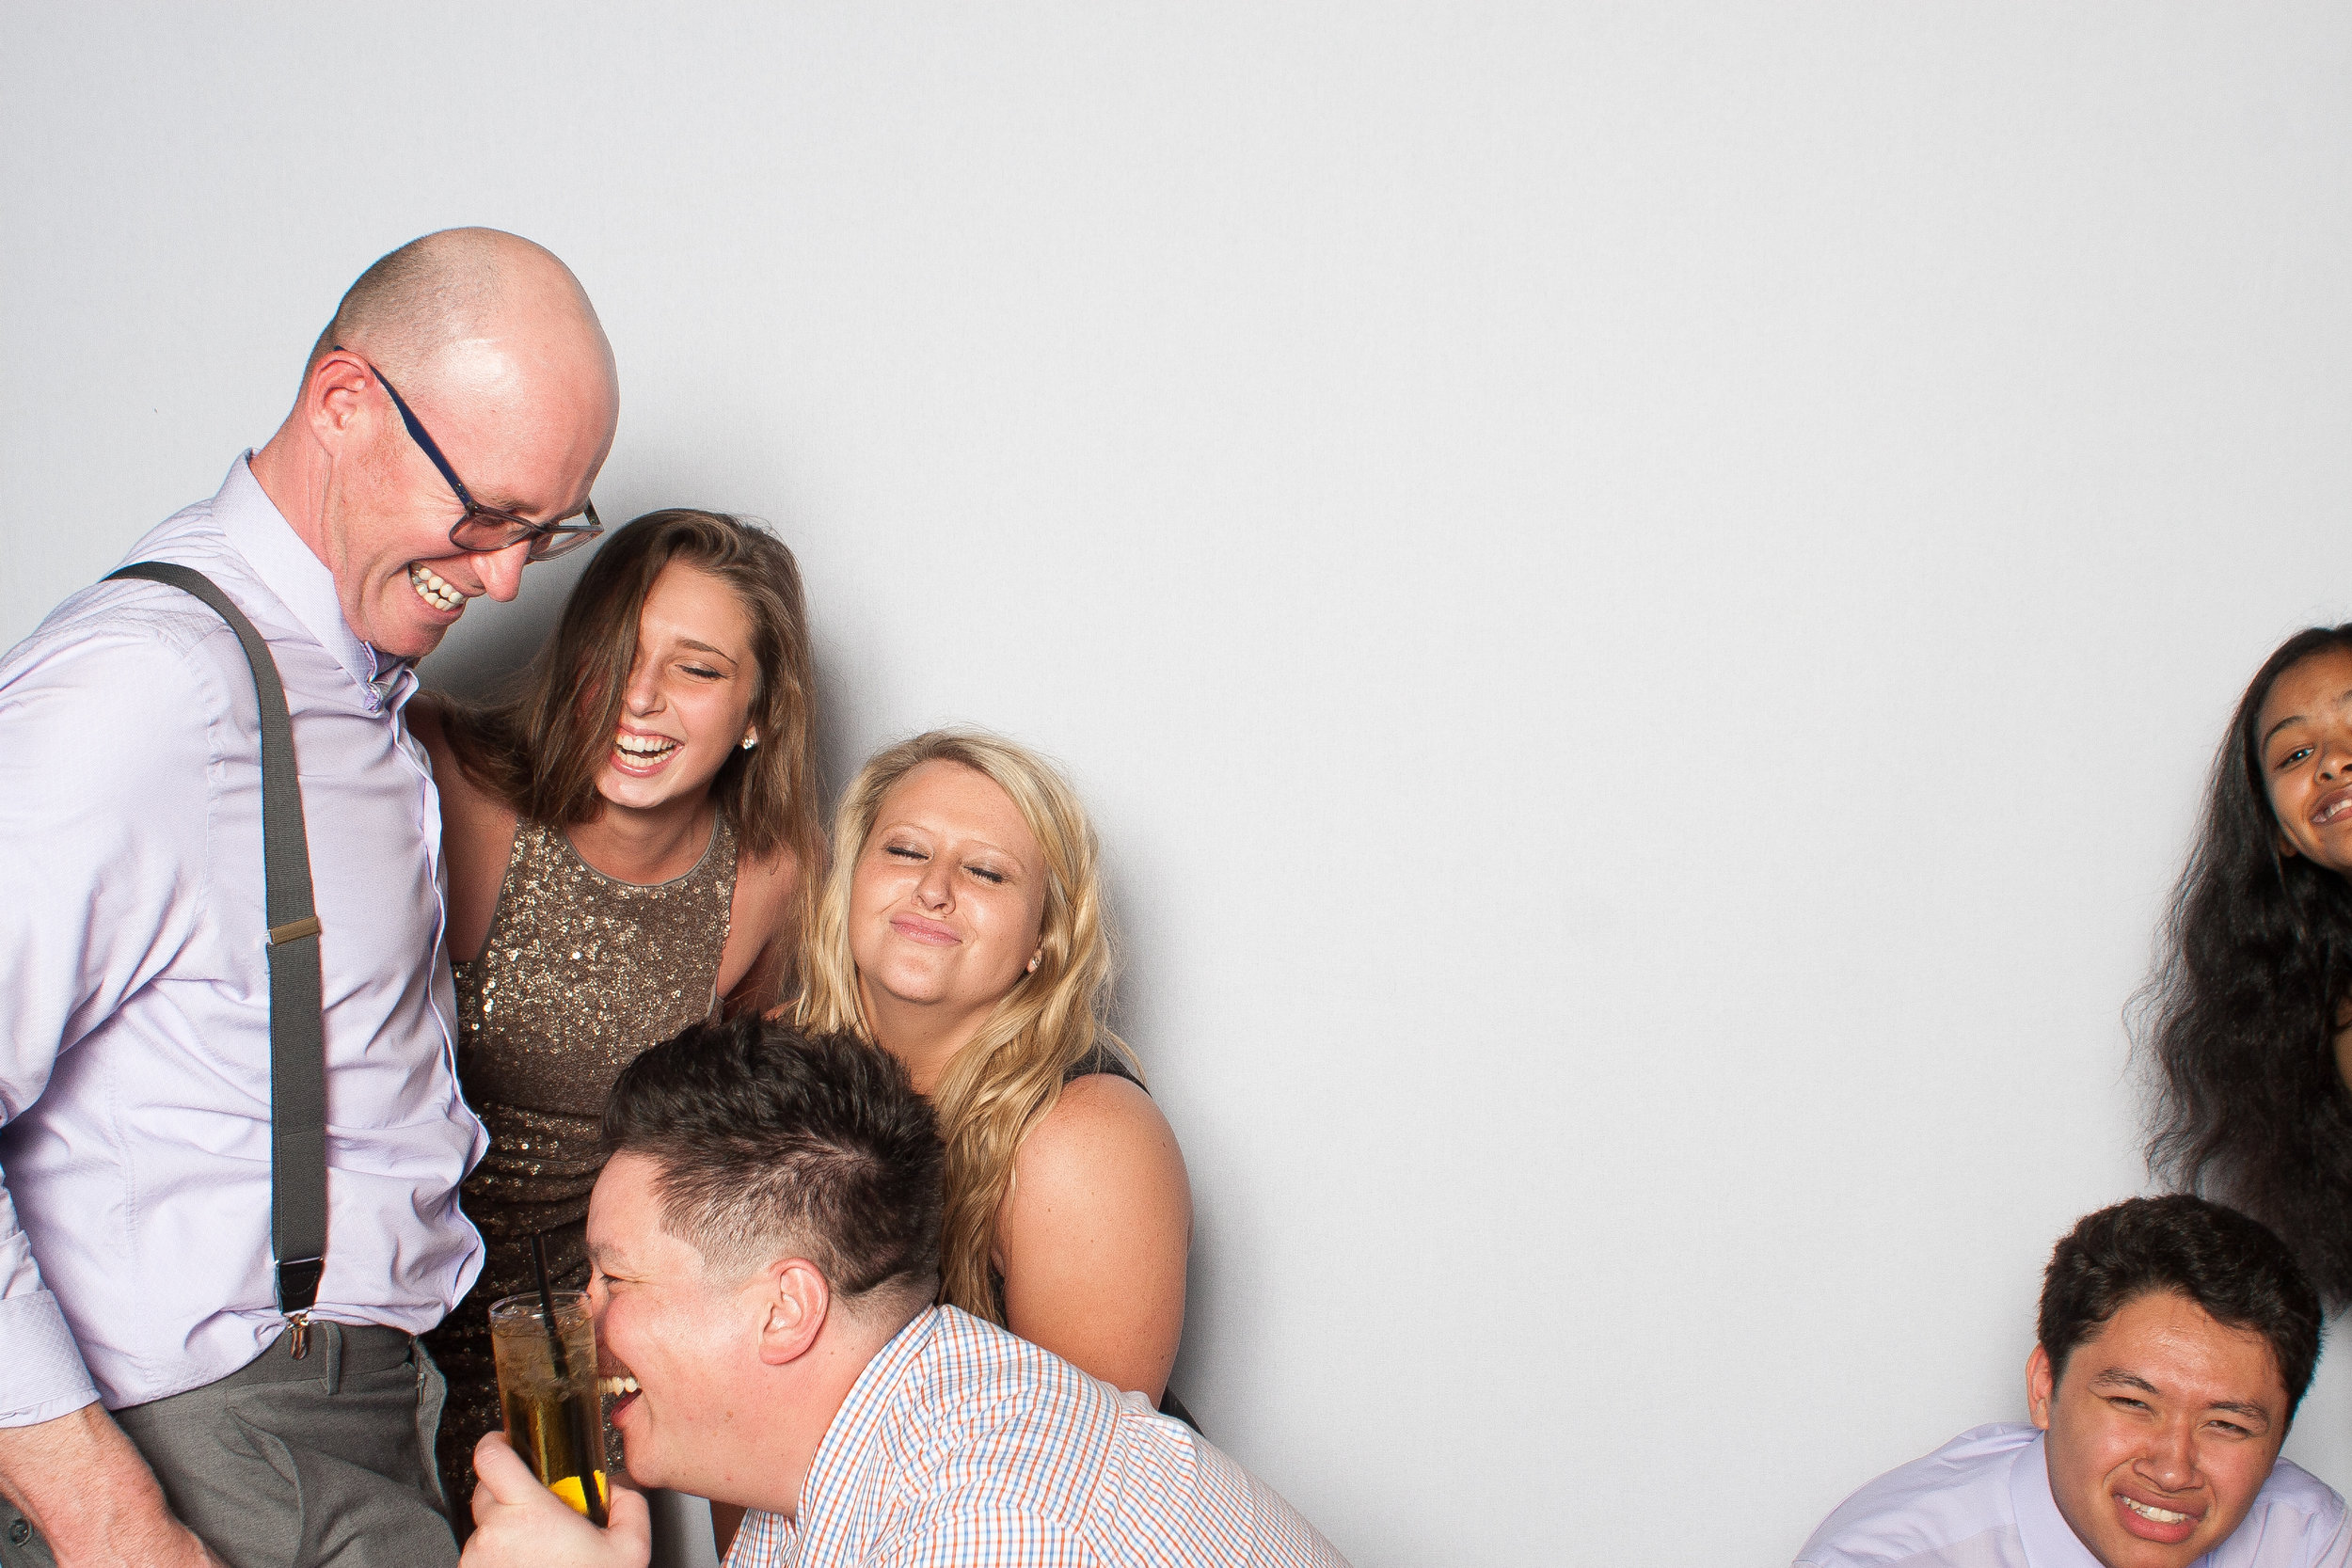 miami wedding photo booth (17).jpg